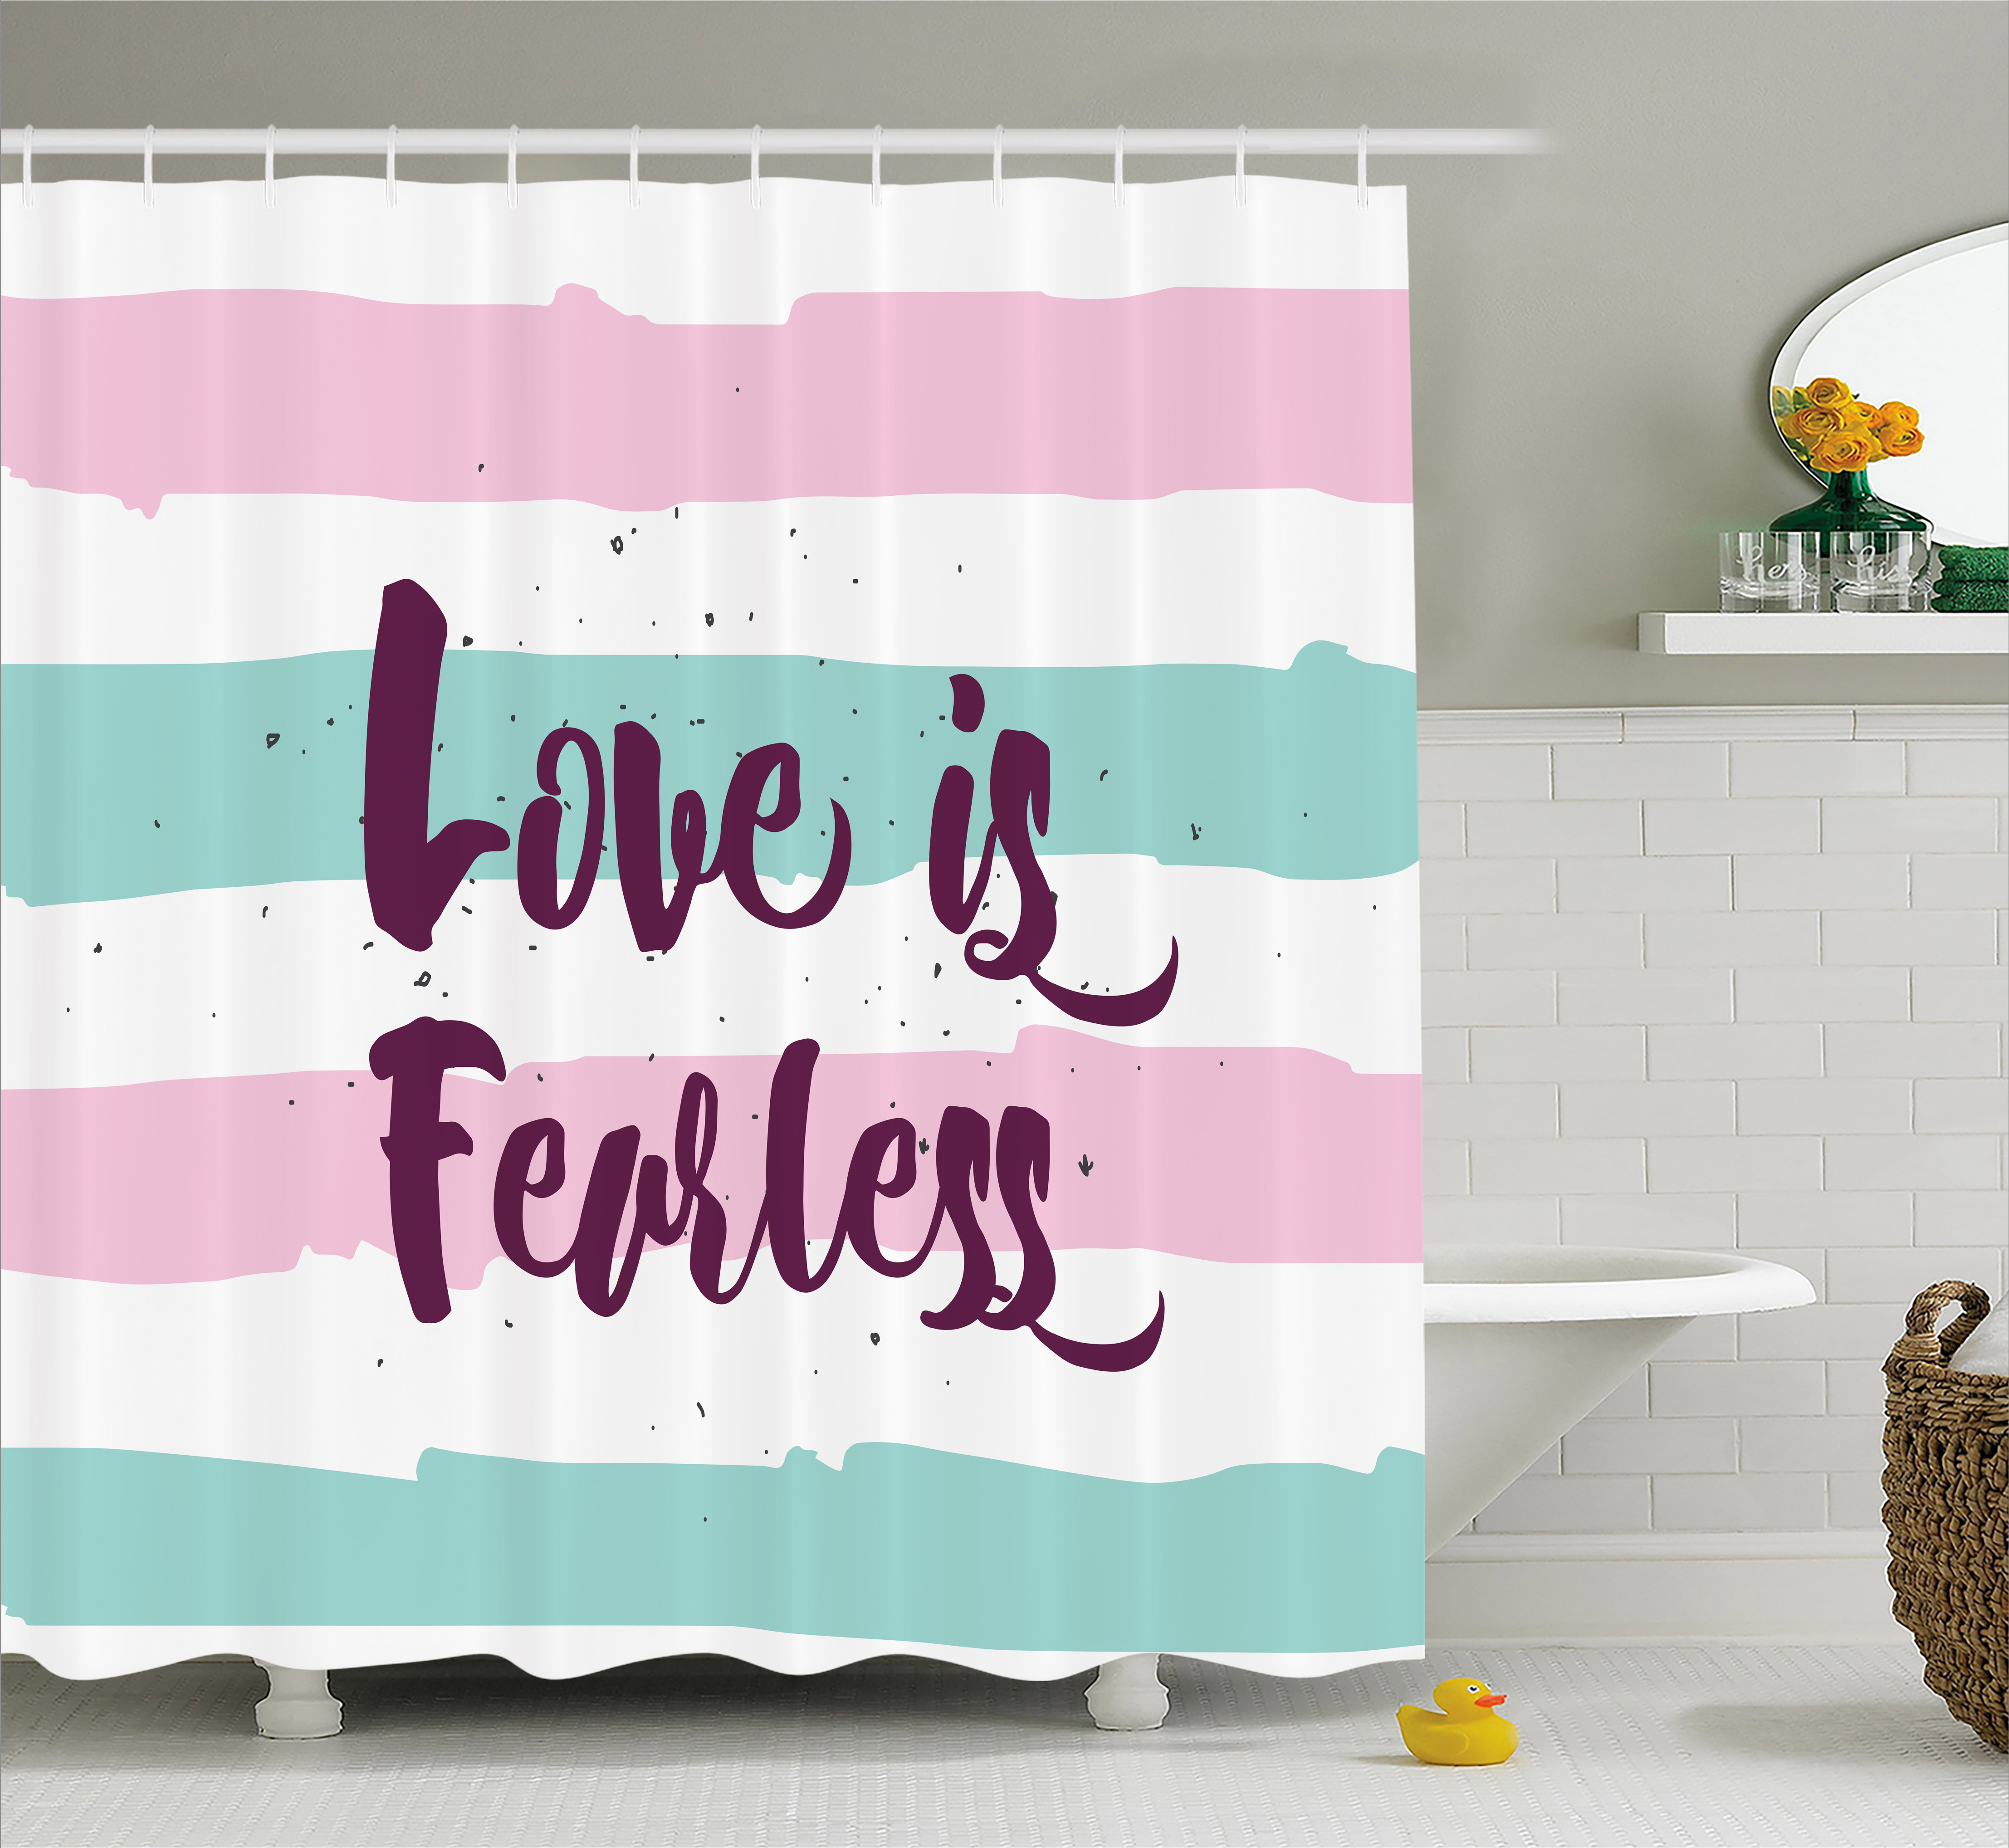 Romantic Shower Curtain Love Is Fearless Inspirational Inscription On Pastel Color Bands Fabric Bathroom Set With Hooks Plum Pale Pink Mint Green